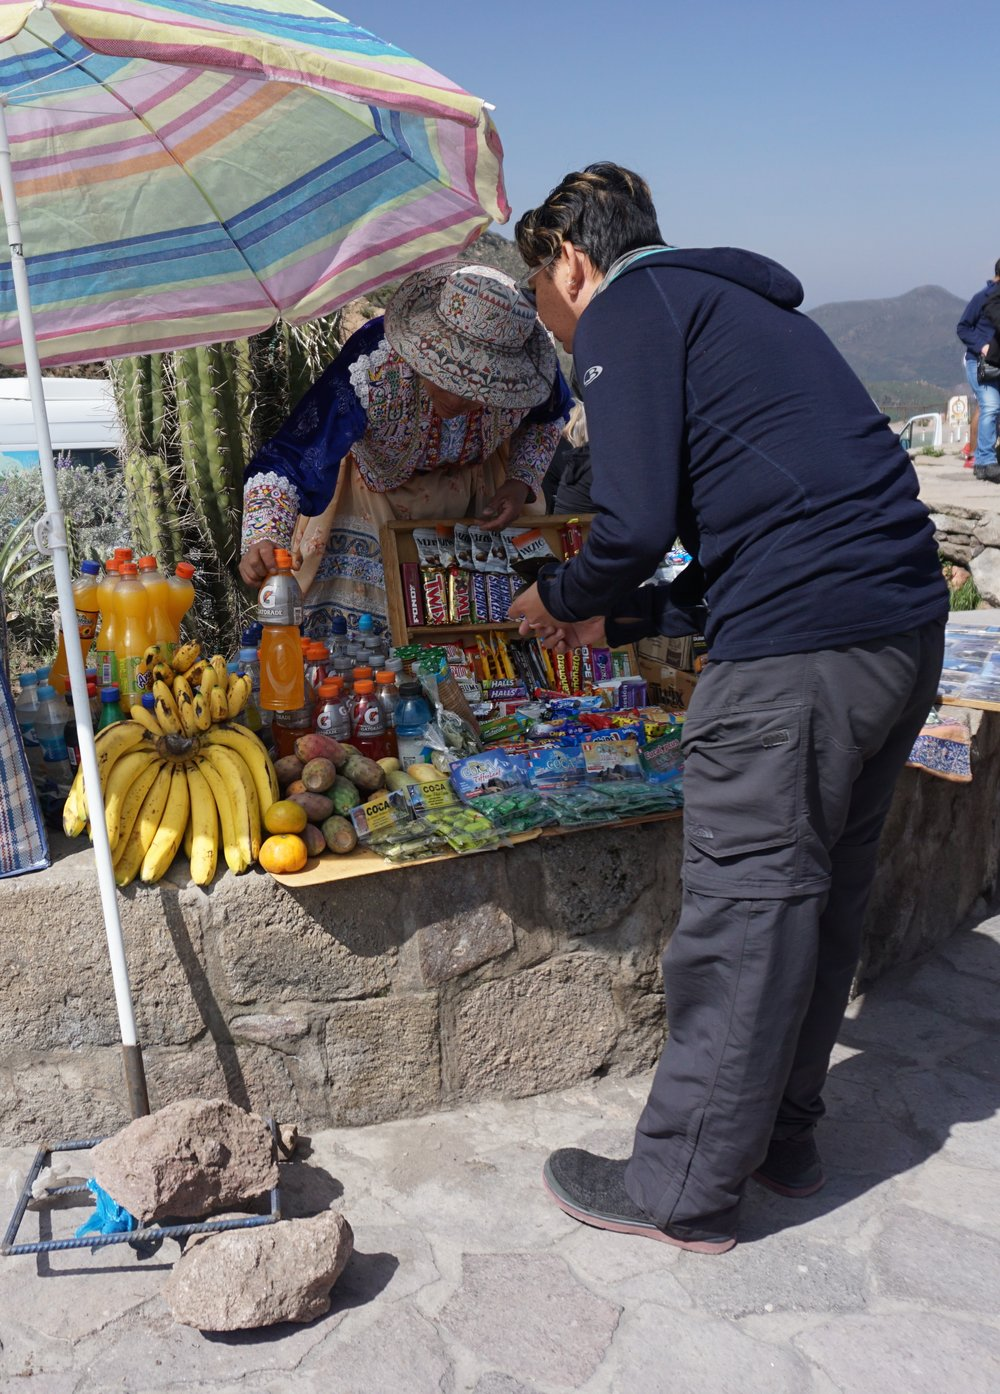 J wheeling and dealing with a vendor at Cruz del Condor